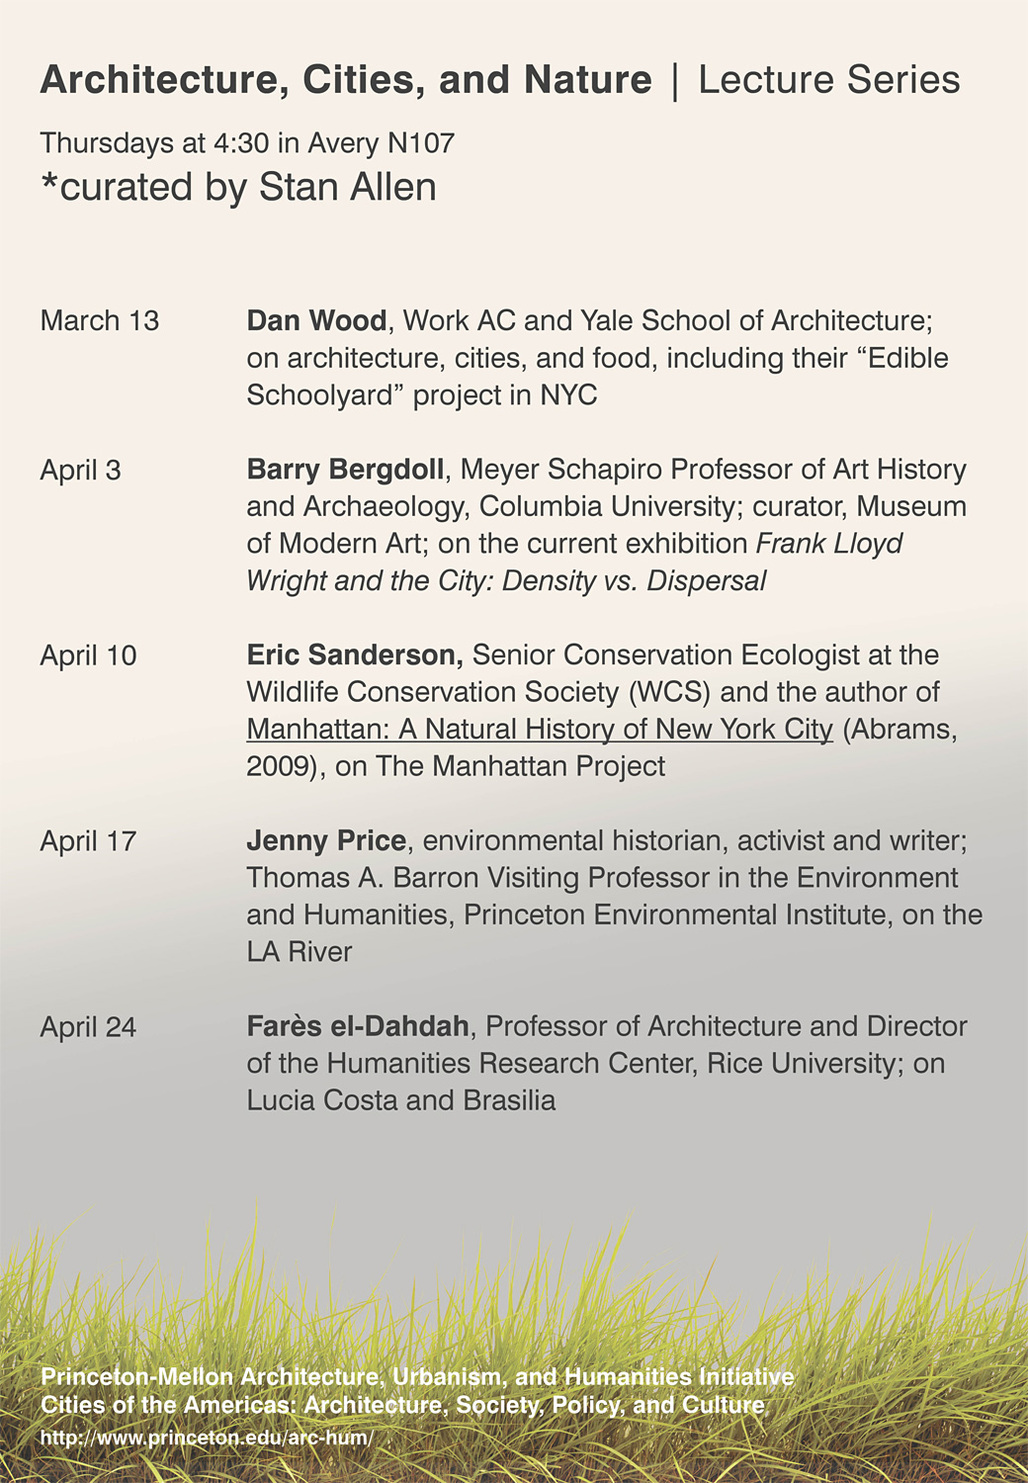 Princeton-Mellon Initiative Spring 14 Lecture Series: Architecture, Cities, and Nature. Design by Hans Tursack, via princeton.edu/arc-hum.